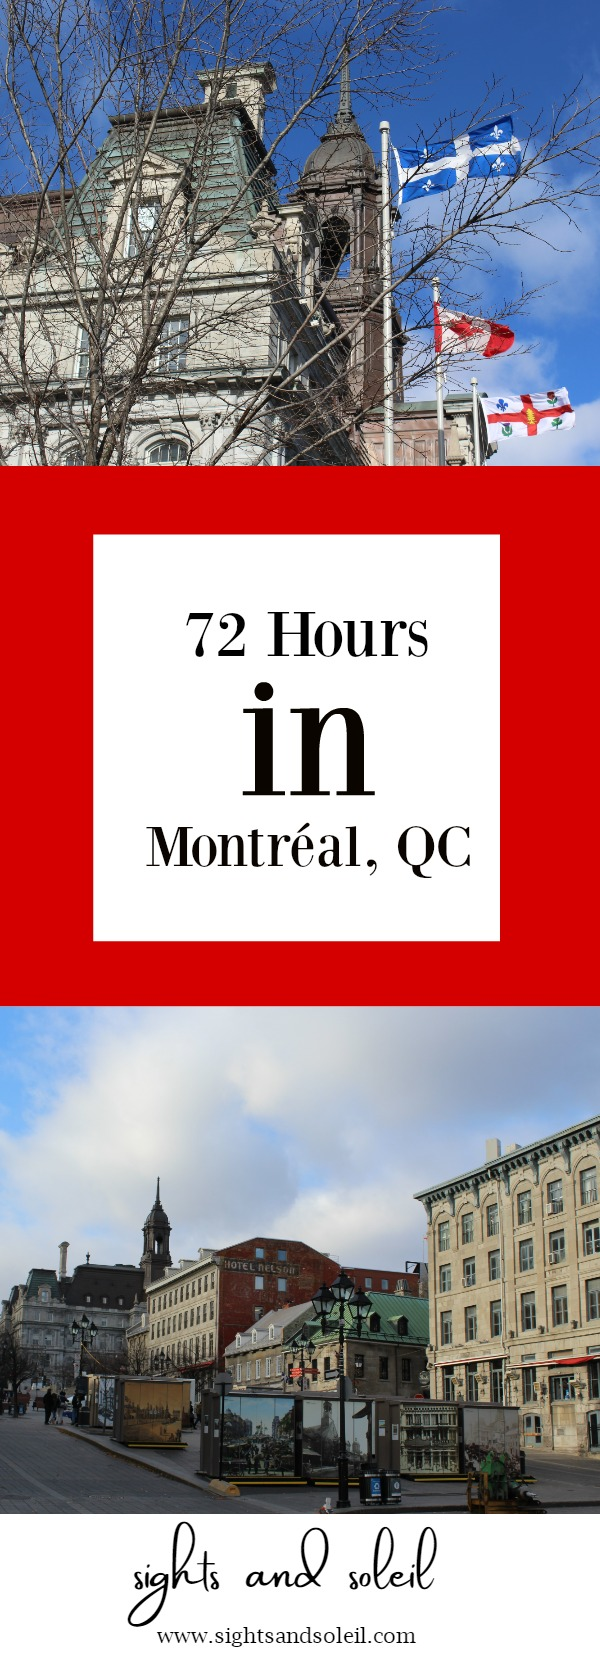 72 Hours in Montreal.jpg